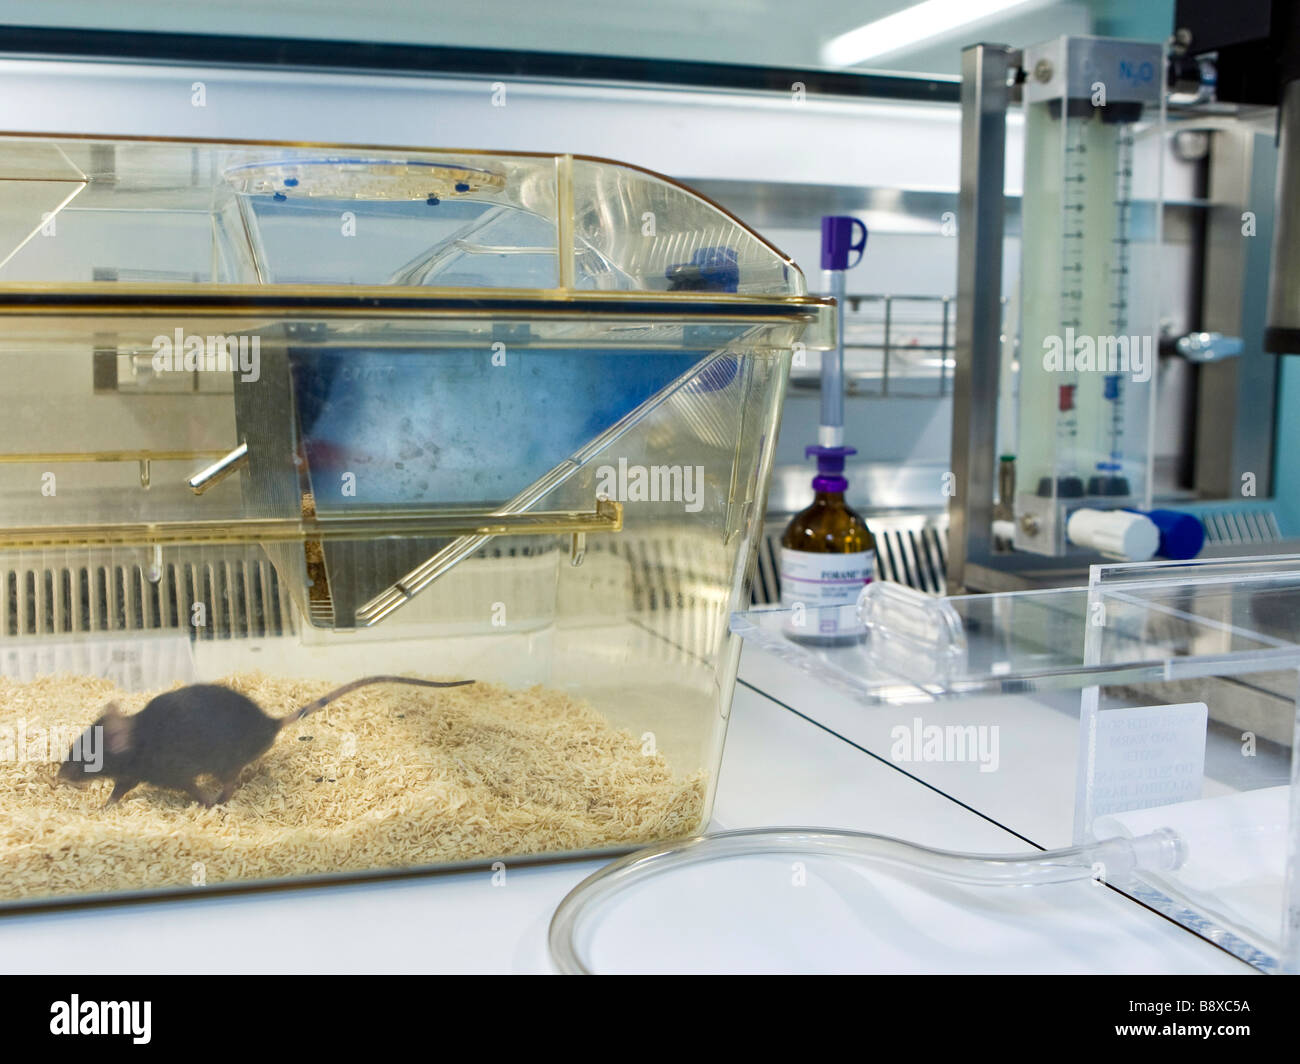 control machinery for animal magnetic resonance, istituto di ricerche farmacologiche mario negri, milan, italy - Stock Image